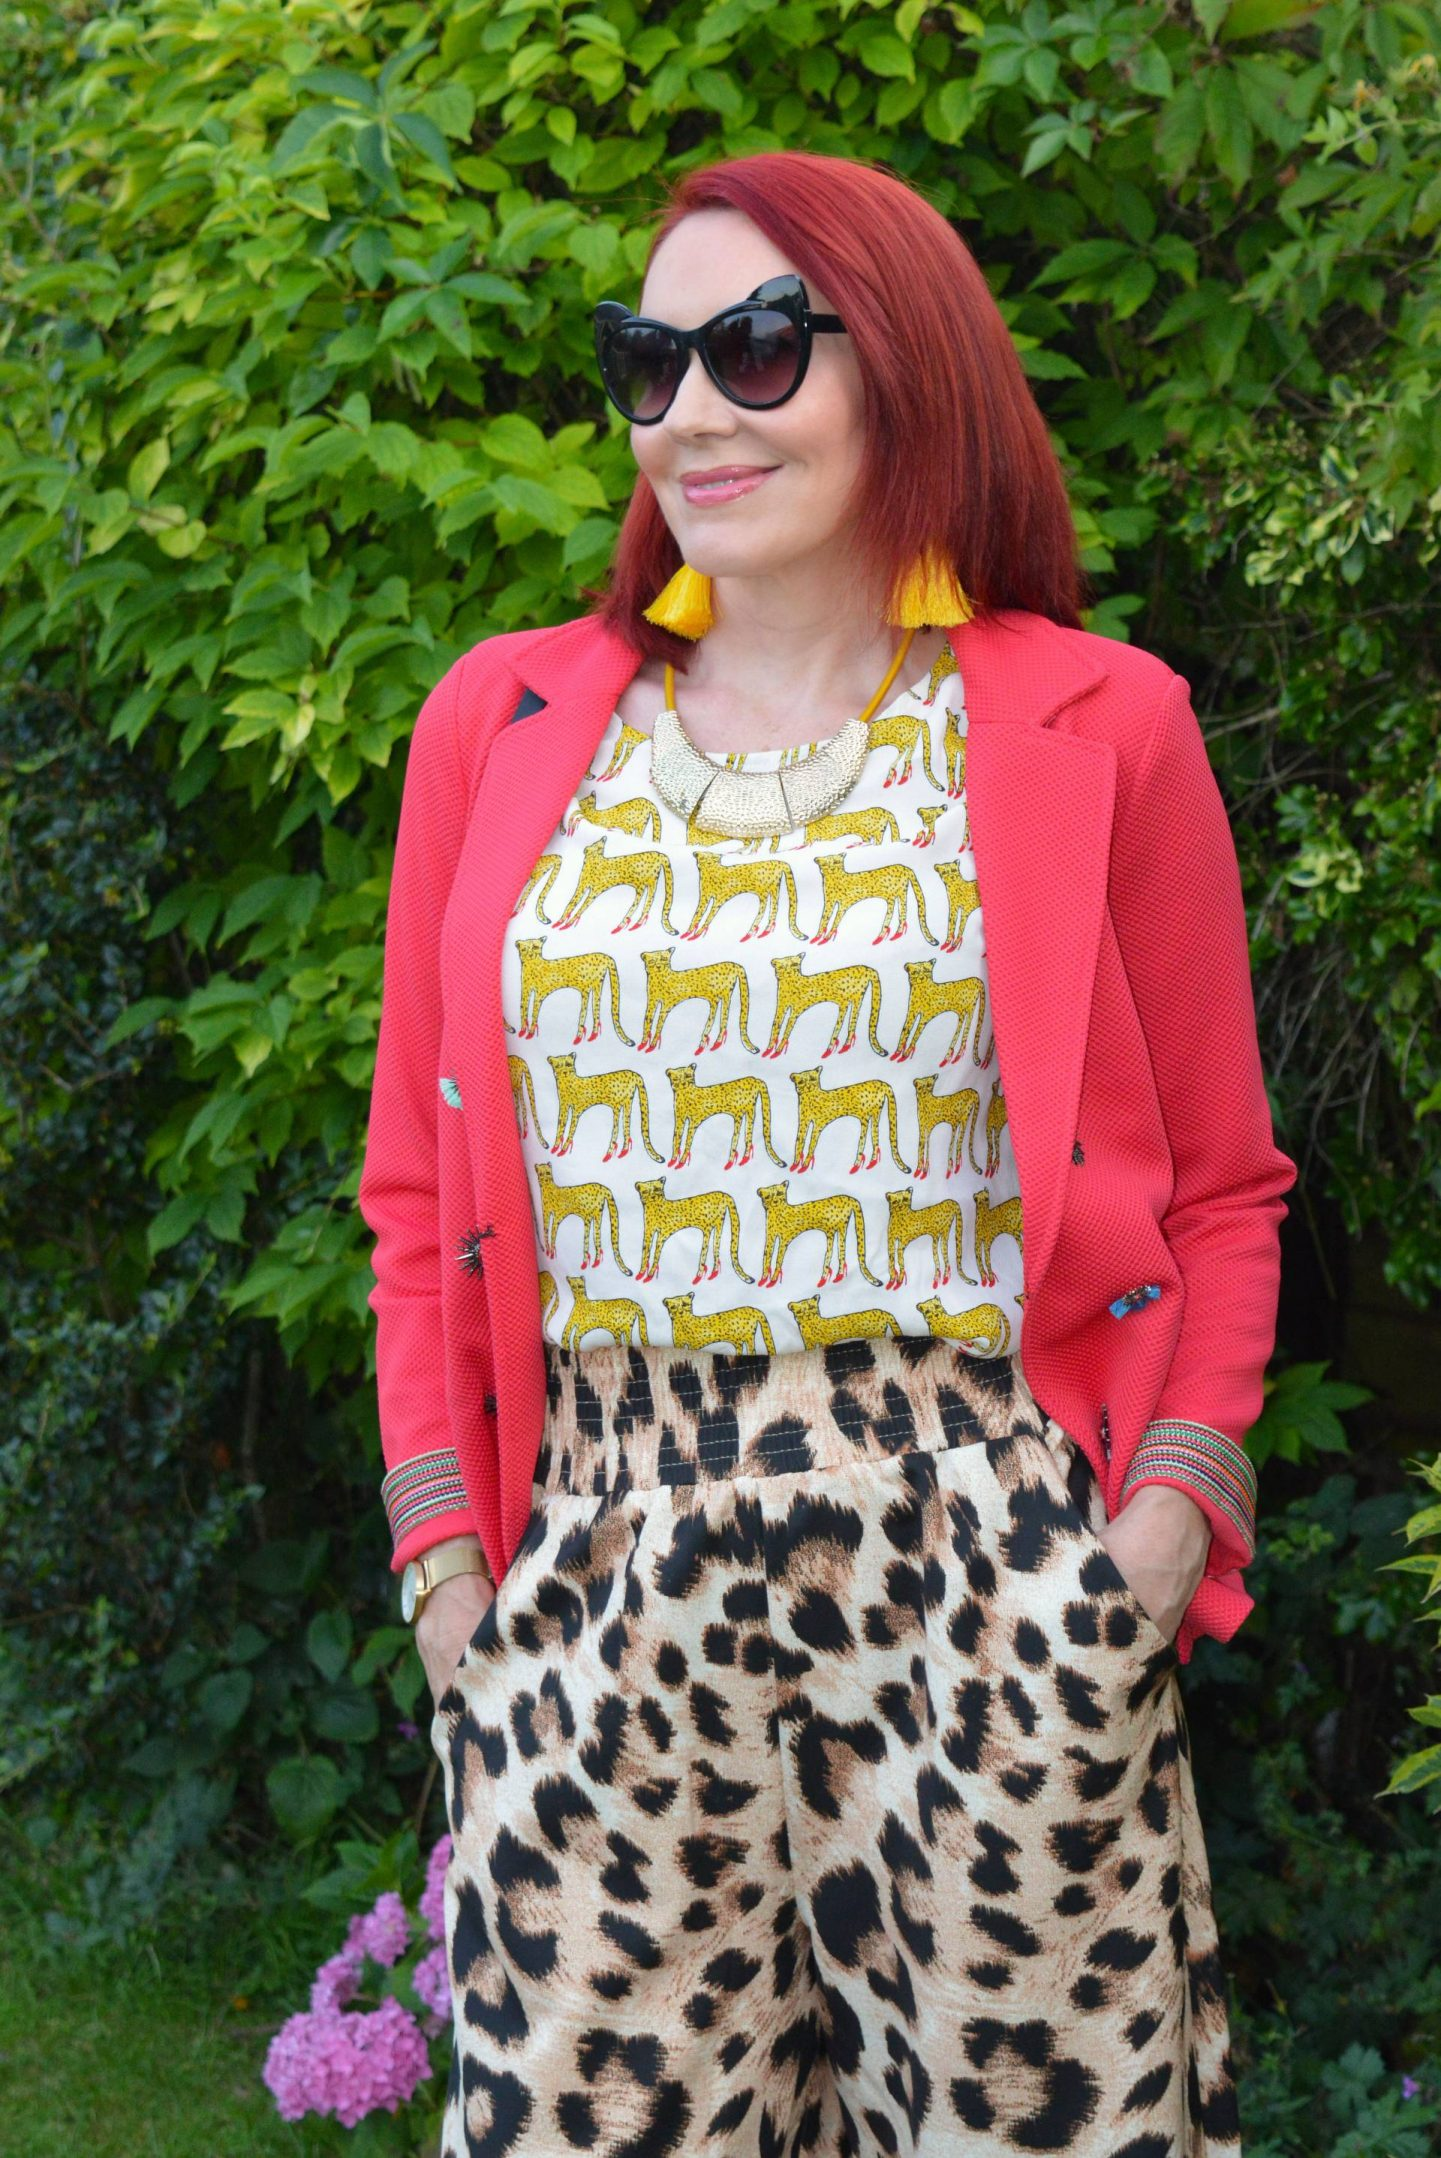 Jackets For July - Style Not Age, Pom Amsterdam raspberry jacket, Fabienne Chapot cheetah top, Asos leopard print trousers